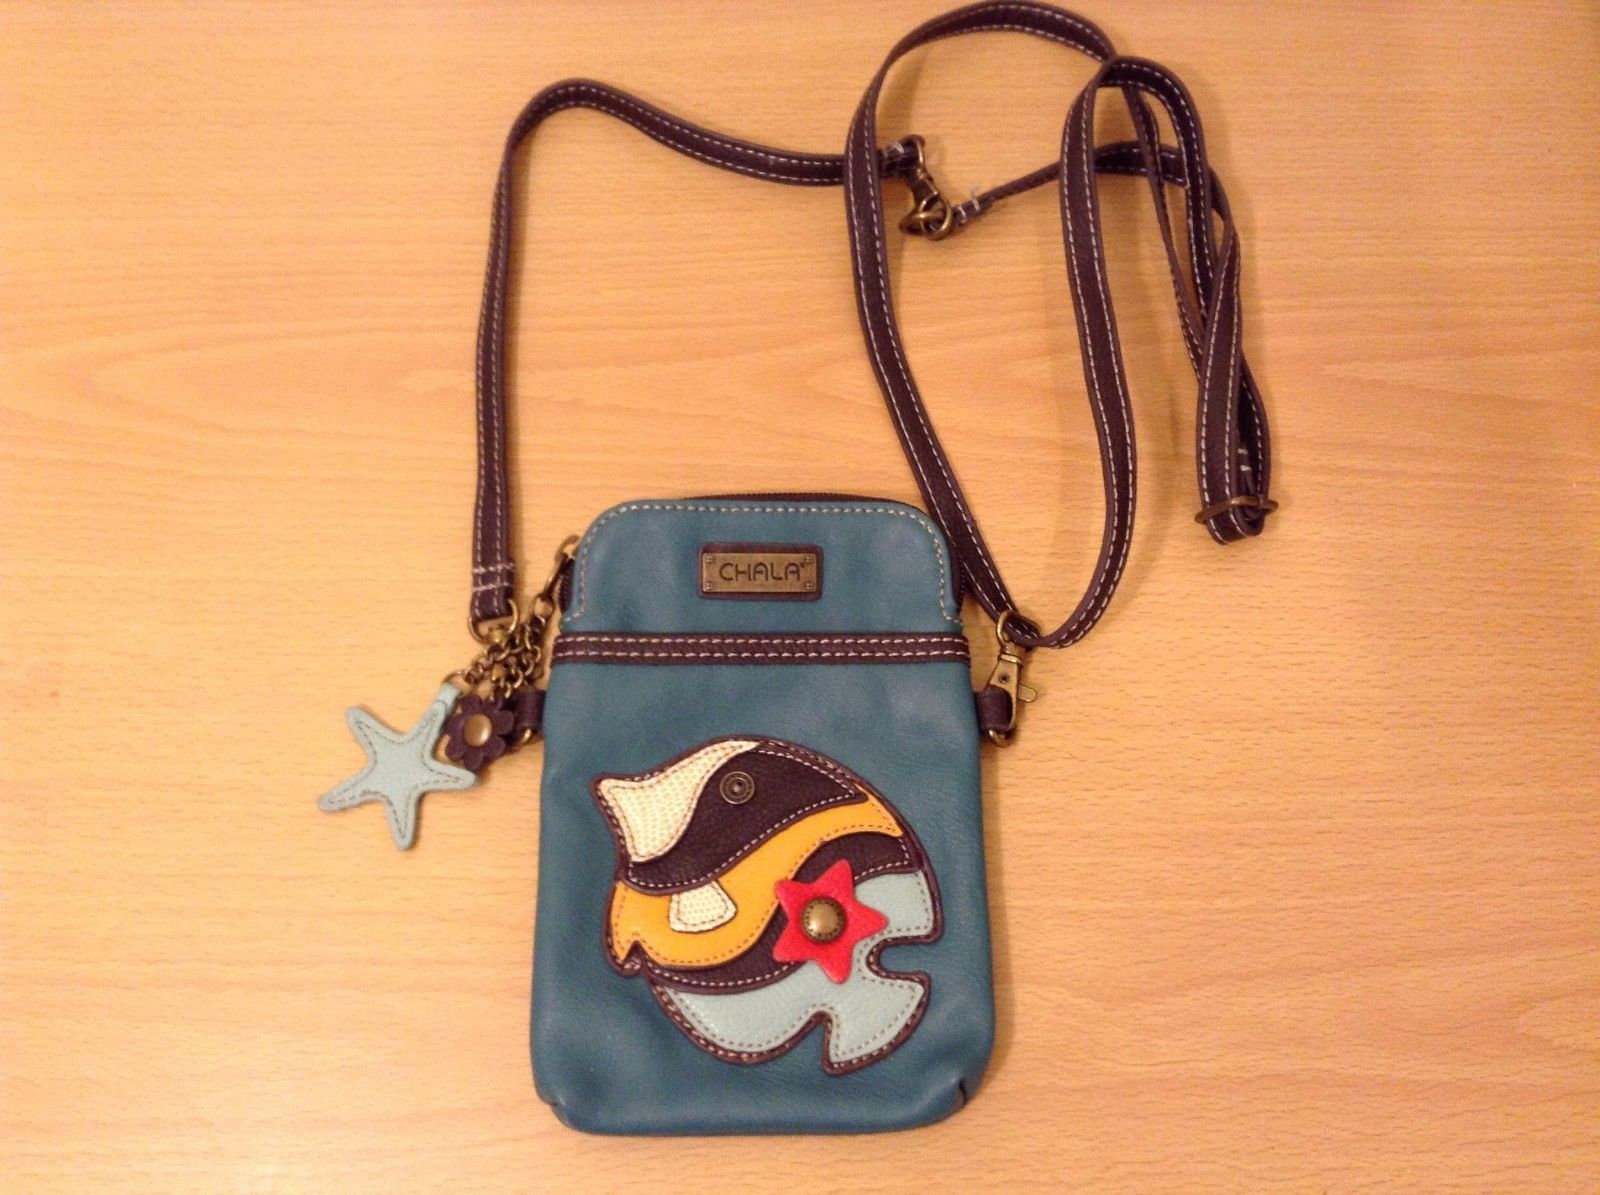 New Chala Handbags Small Crossbody Cell Phone Purse Bag Teal Fish Faux Leather